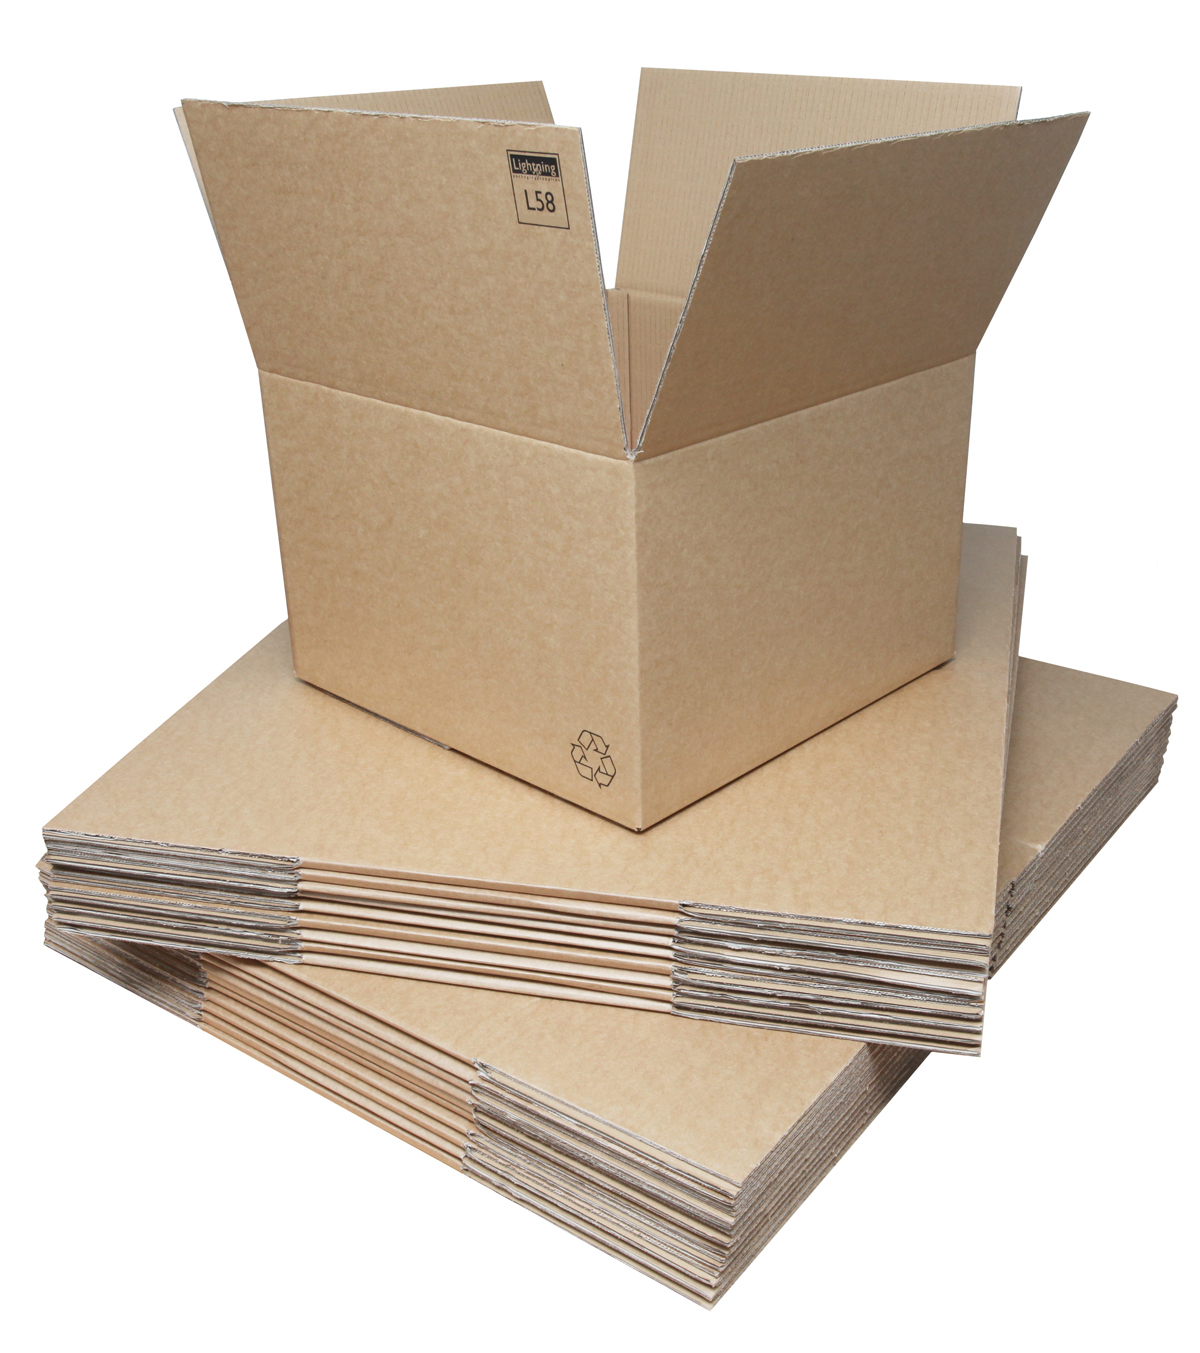 What you need to know about cardboard moving boxes